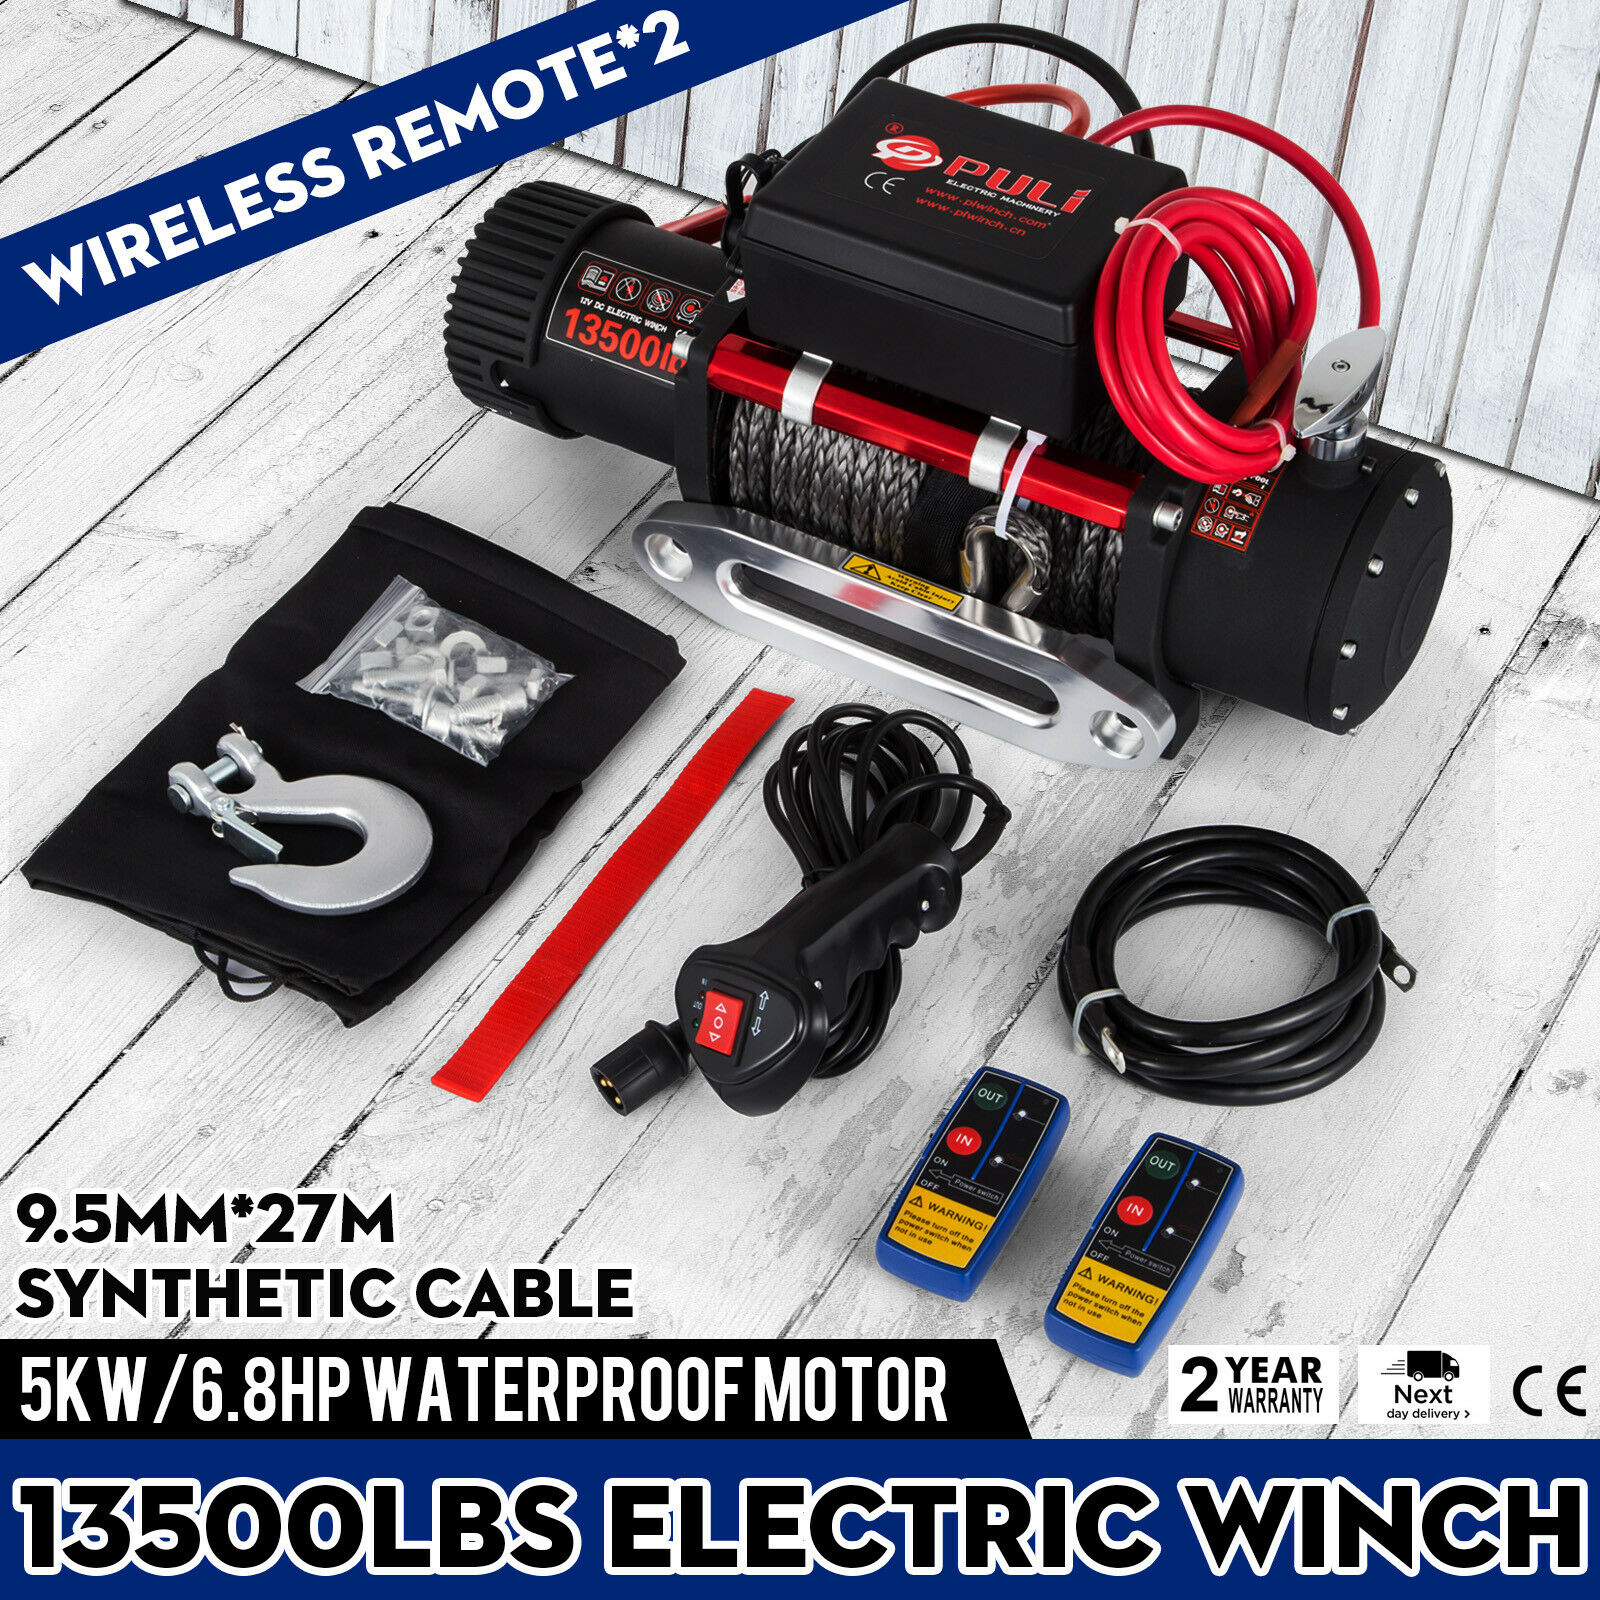 ELECTRIC WINCH 13500lb 12V SYNTHETIC ROPE WINCHMAX 4x4/RECOVERY WIRELESS 93ft